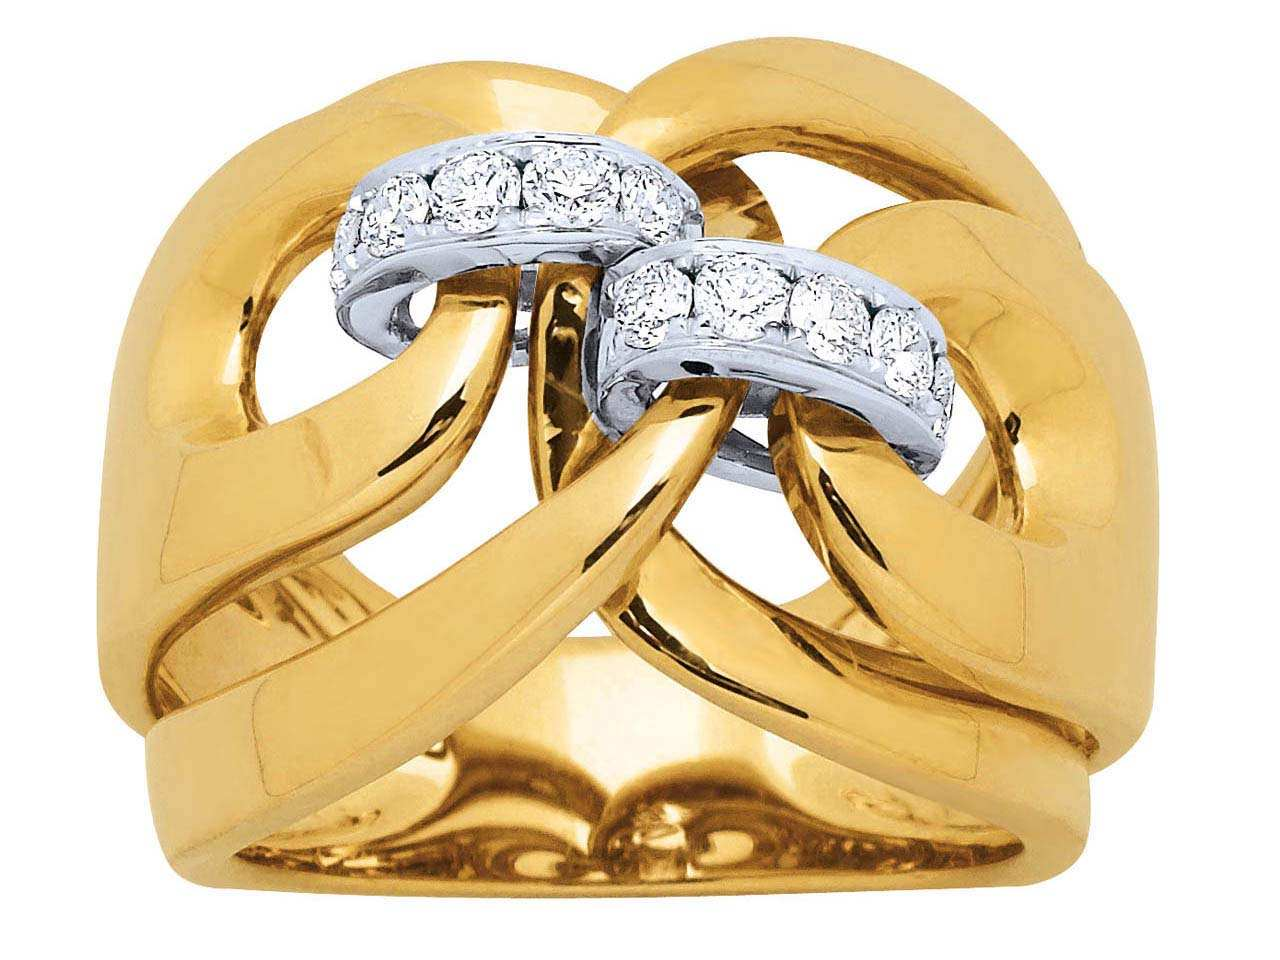 Bague liens Or jaune, diamants 0,43 ct, doigt 56